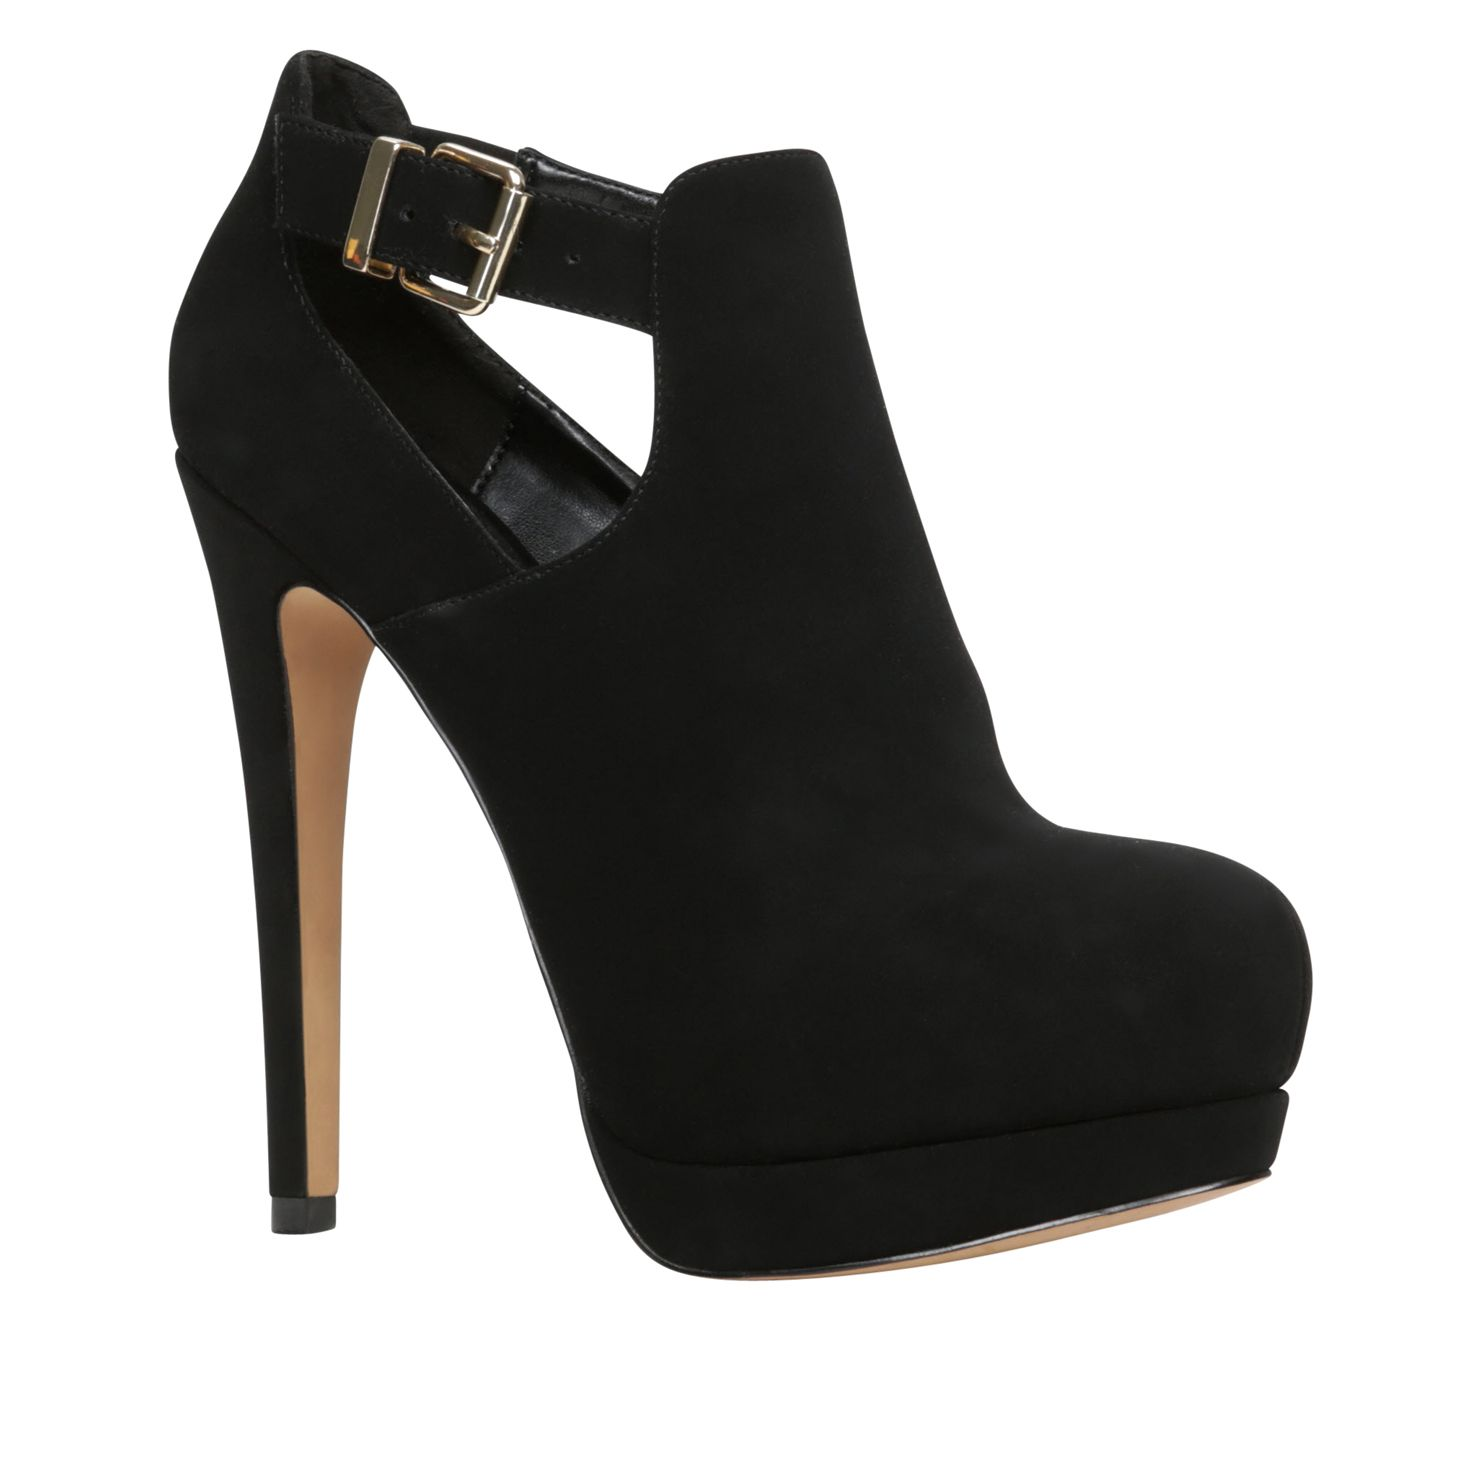 Elesta platform court shoes